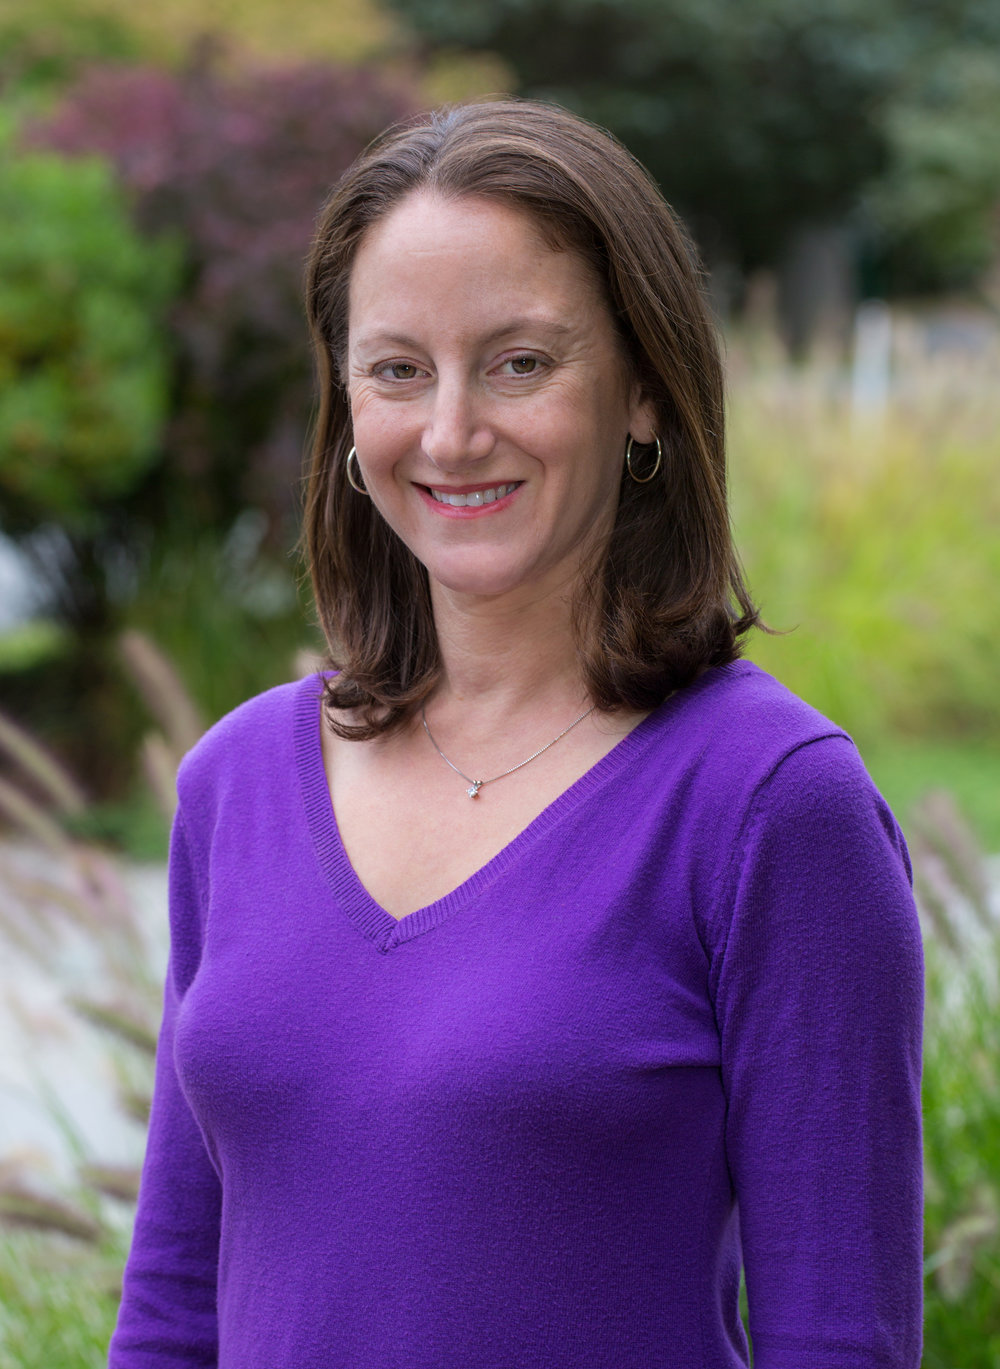 Tracy Durso - Tracy Durso is a graduate of the Dance Masters of America (DMA) Teacher Training School and holds a B.S. in Marketing from Miami University. She taught creative movement, ballet, and jazz to children at a performing arts school for 15 years and completed Music Together training as well. A former contributing writer for Dance Studio Life Magazine, she is a Hingham mom of 3 children who inspire her every day. Tracy created and began teaching Dance Along in 2013 to bring her love of dance to active boys and girls as young as 16 months.